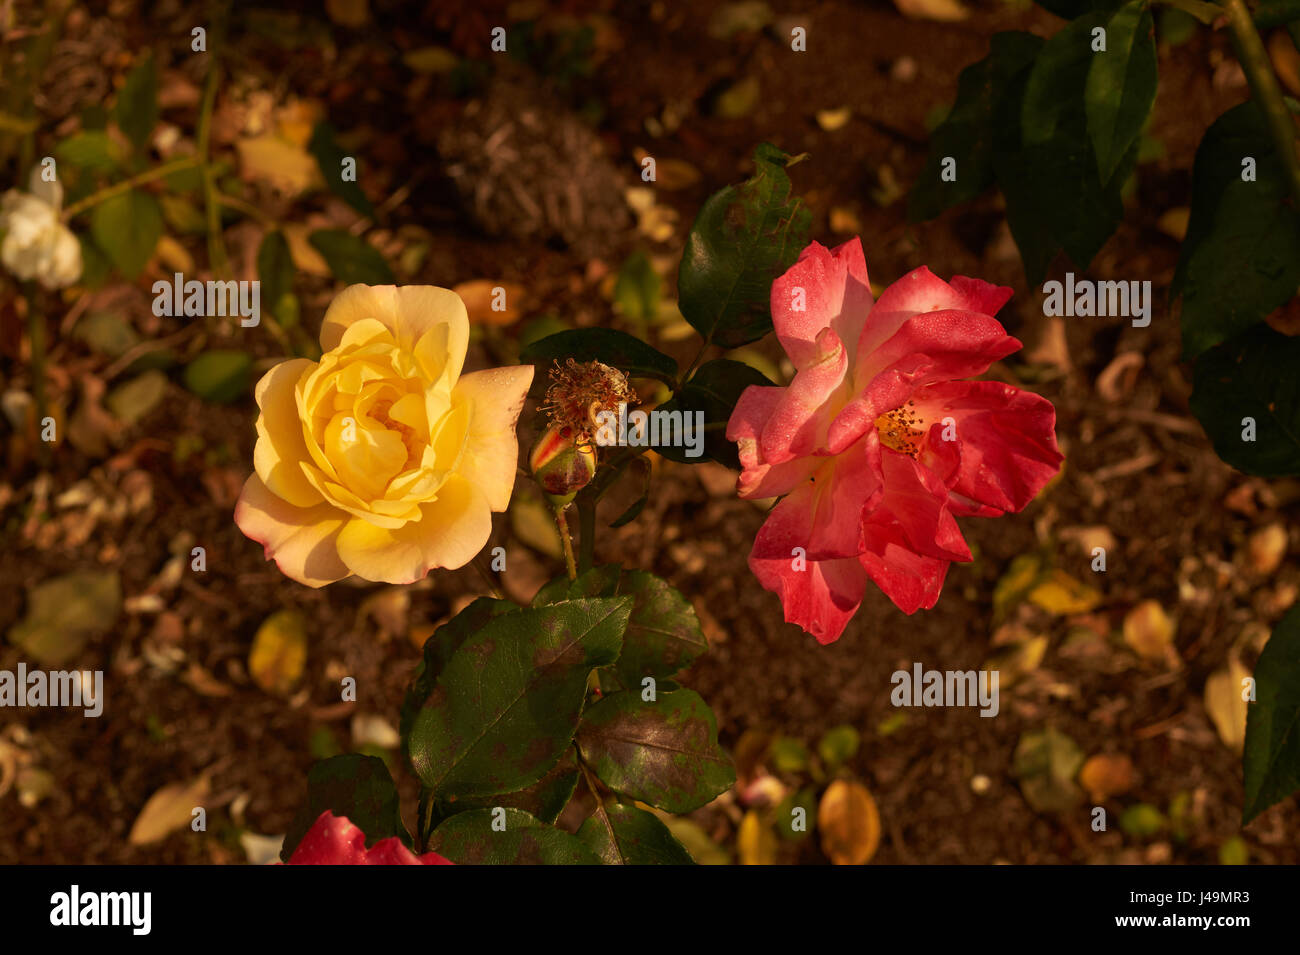 image of yellow and red rose on the same plant - Stock Image